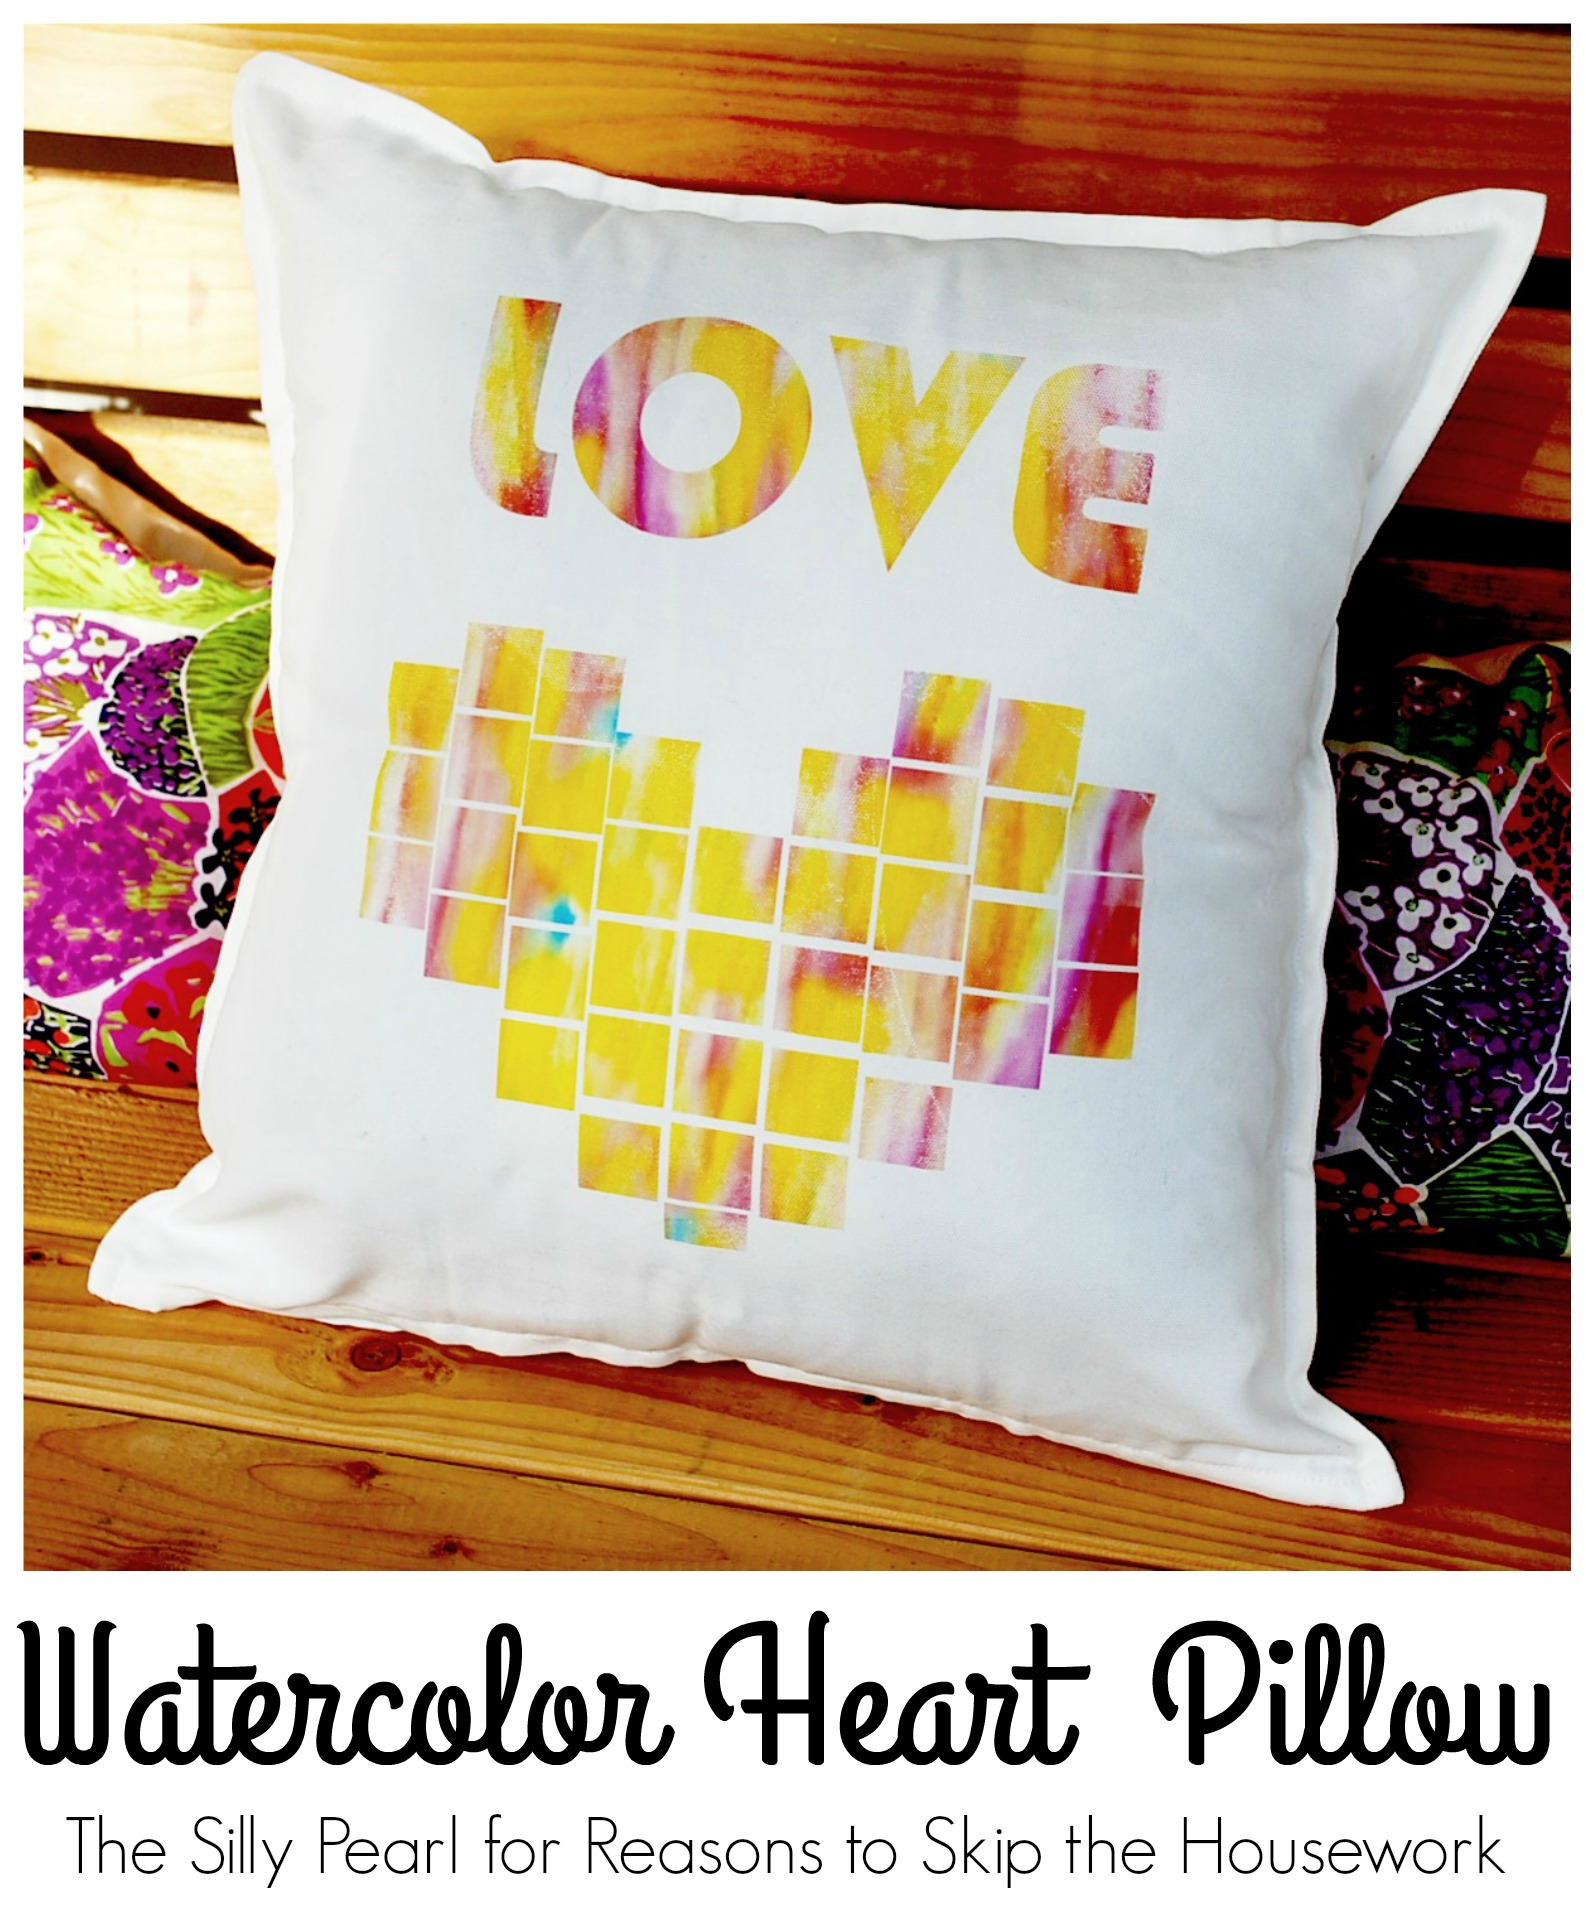 Watercolor Heart Pillow by The Silly Pearl for Reasons to Skip the Housework